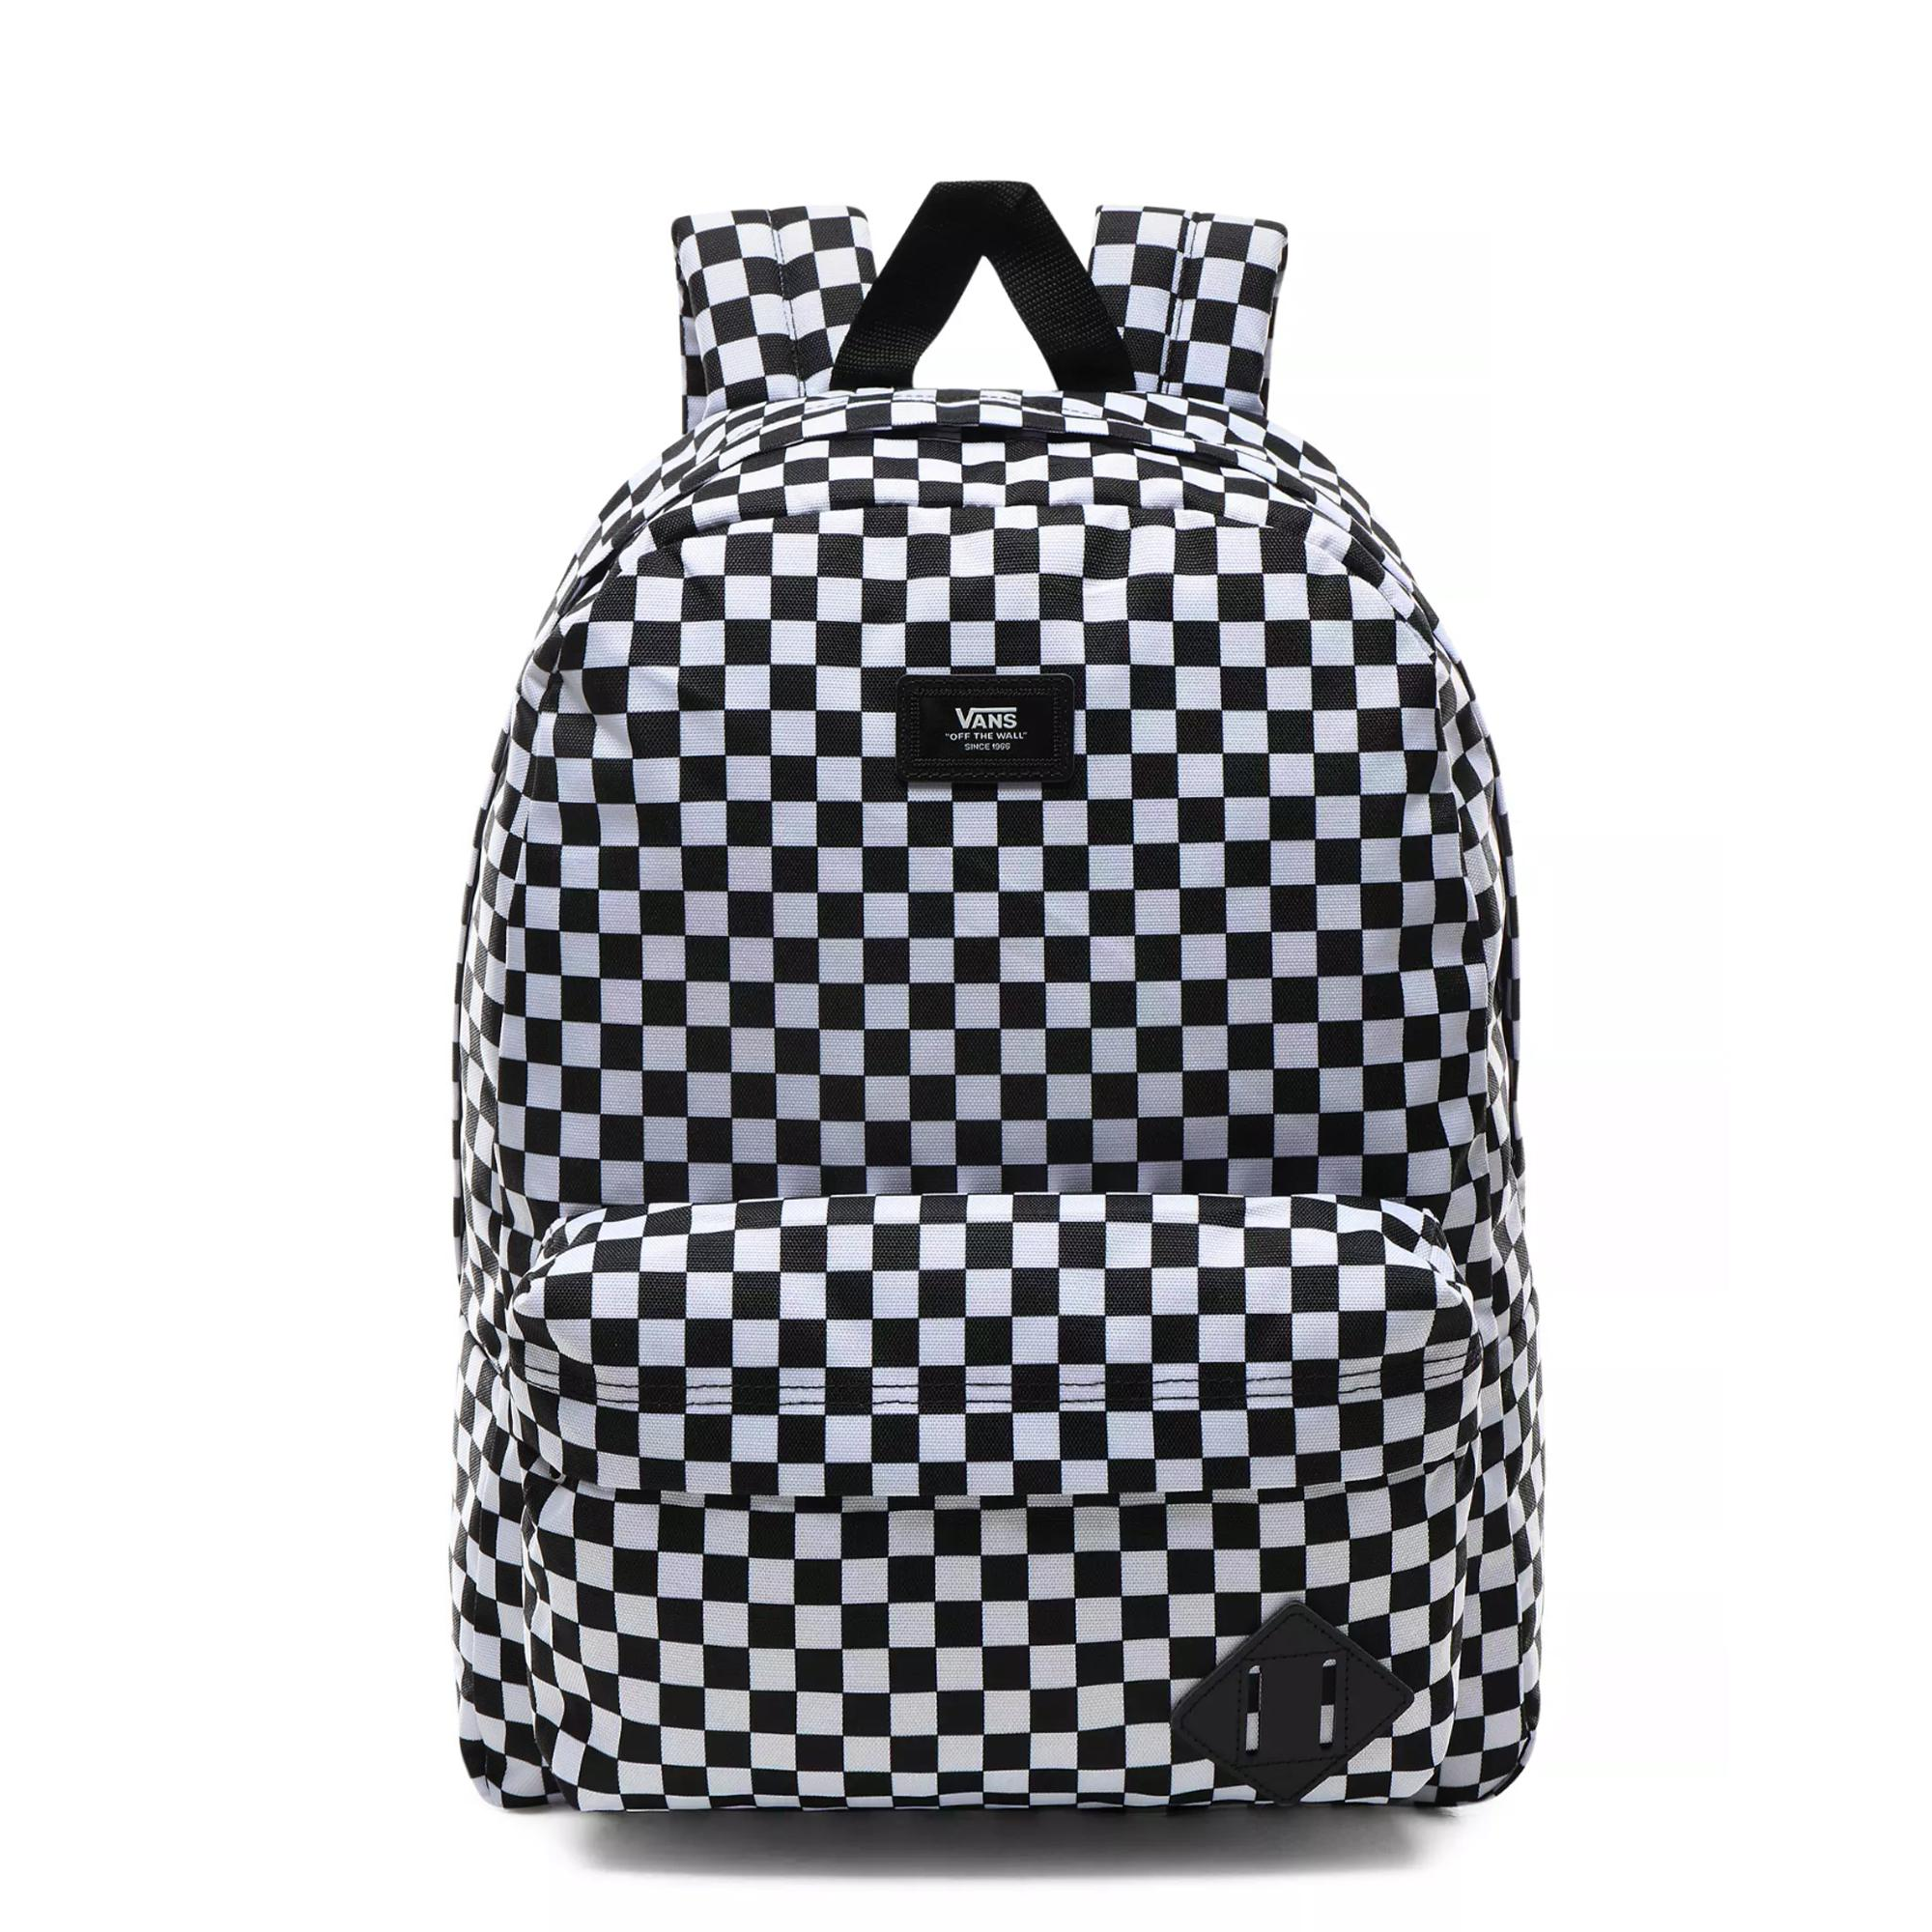 Vans Old Skool Iii Backpack Black white check